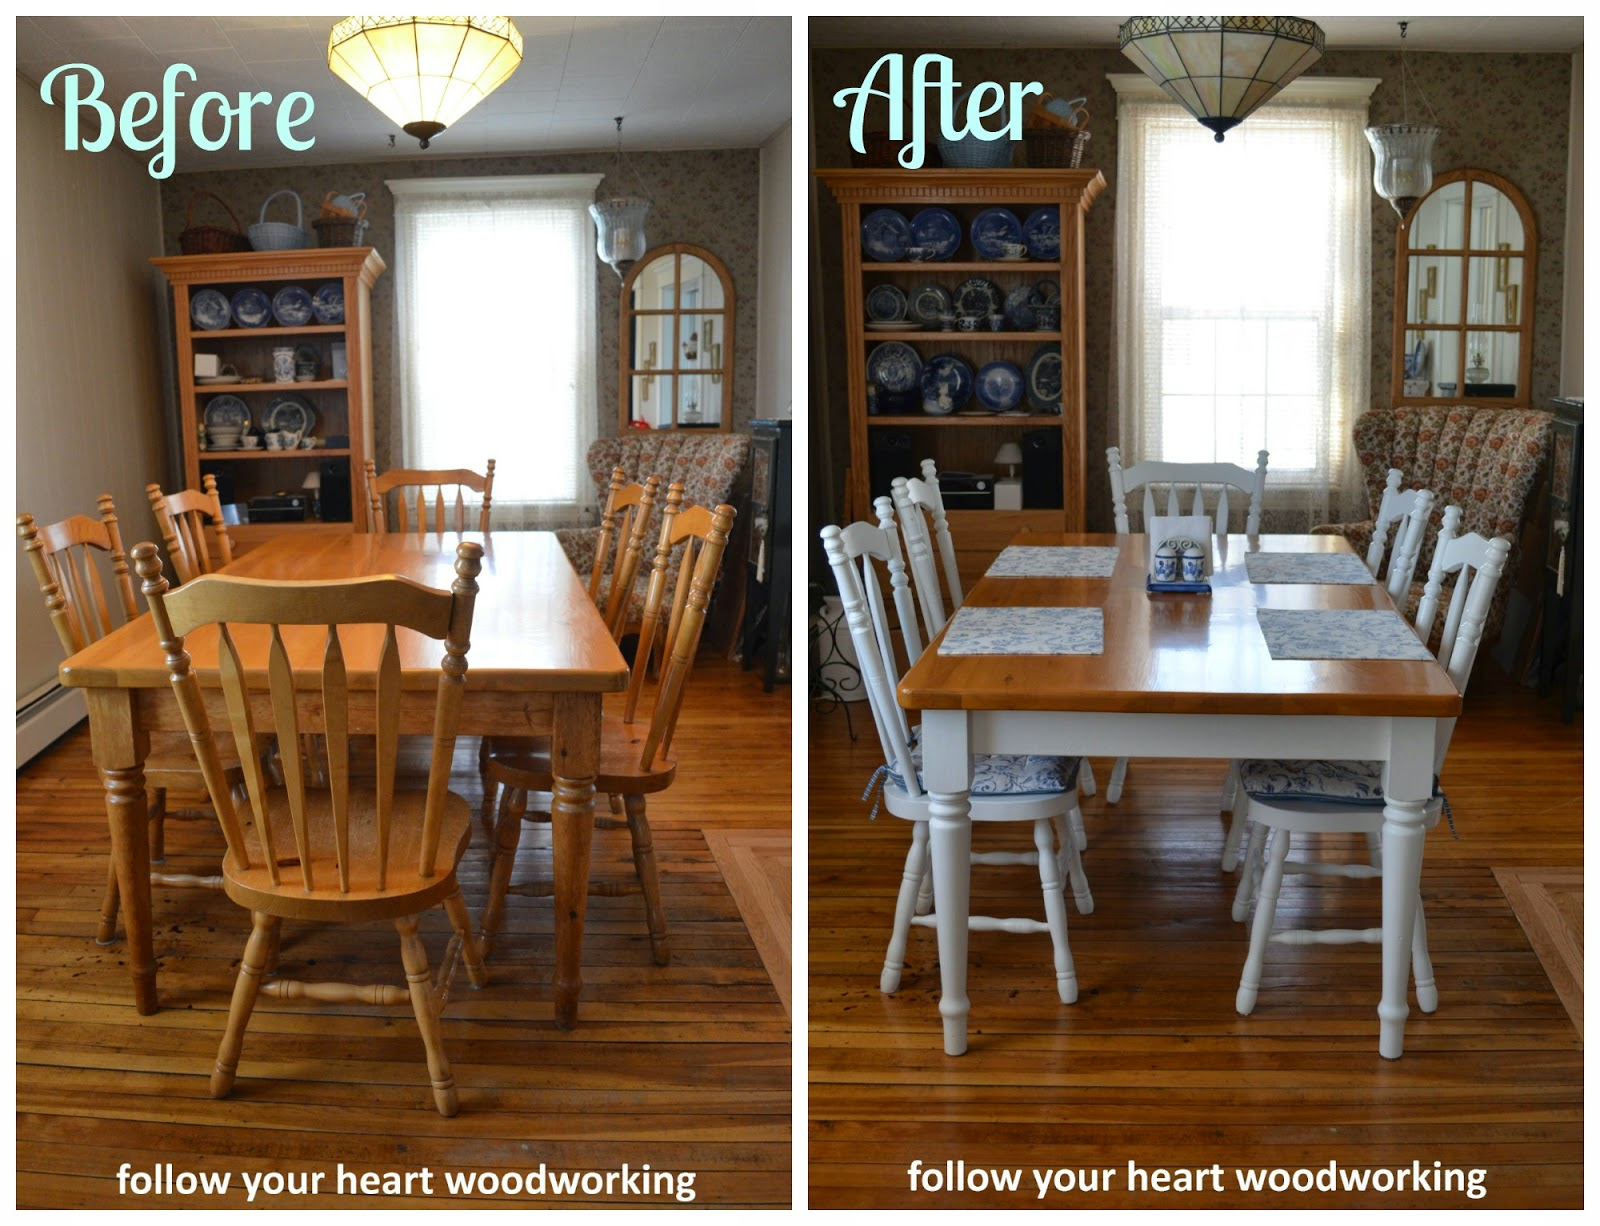 Painting Dining Room Furniture Follow Your Heart Woodworking Painting A Farmhouse Table And Chairs